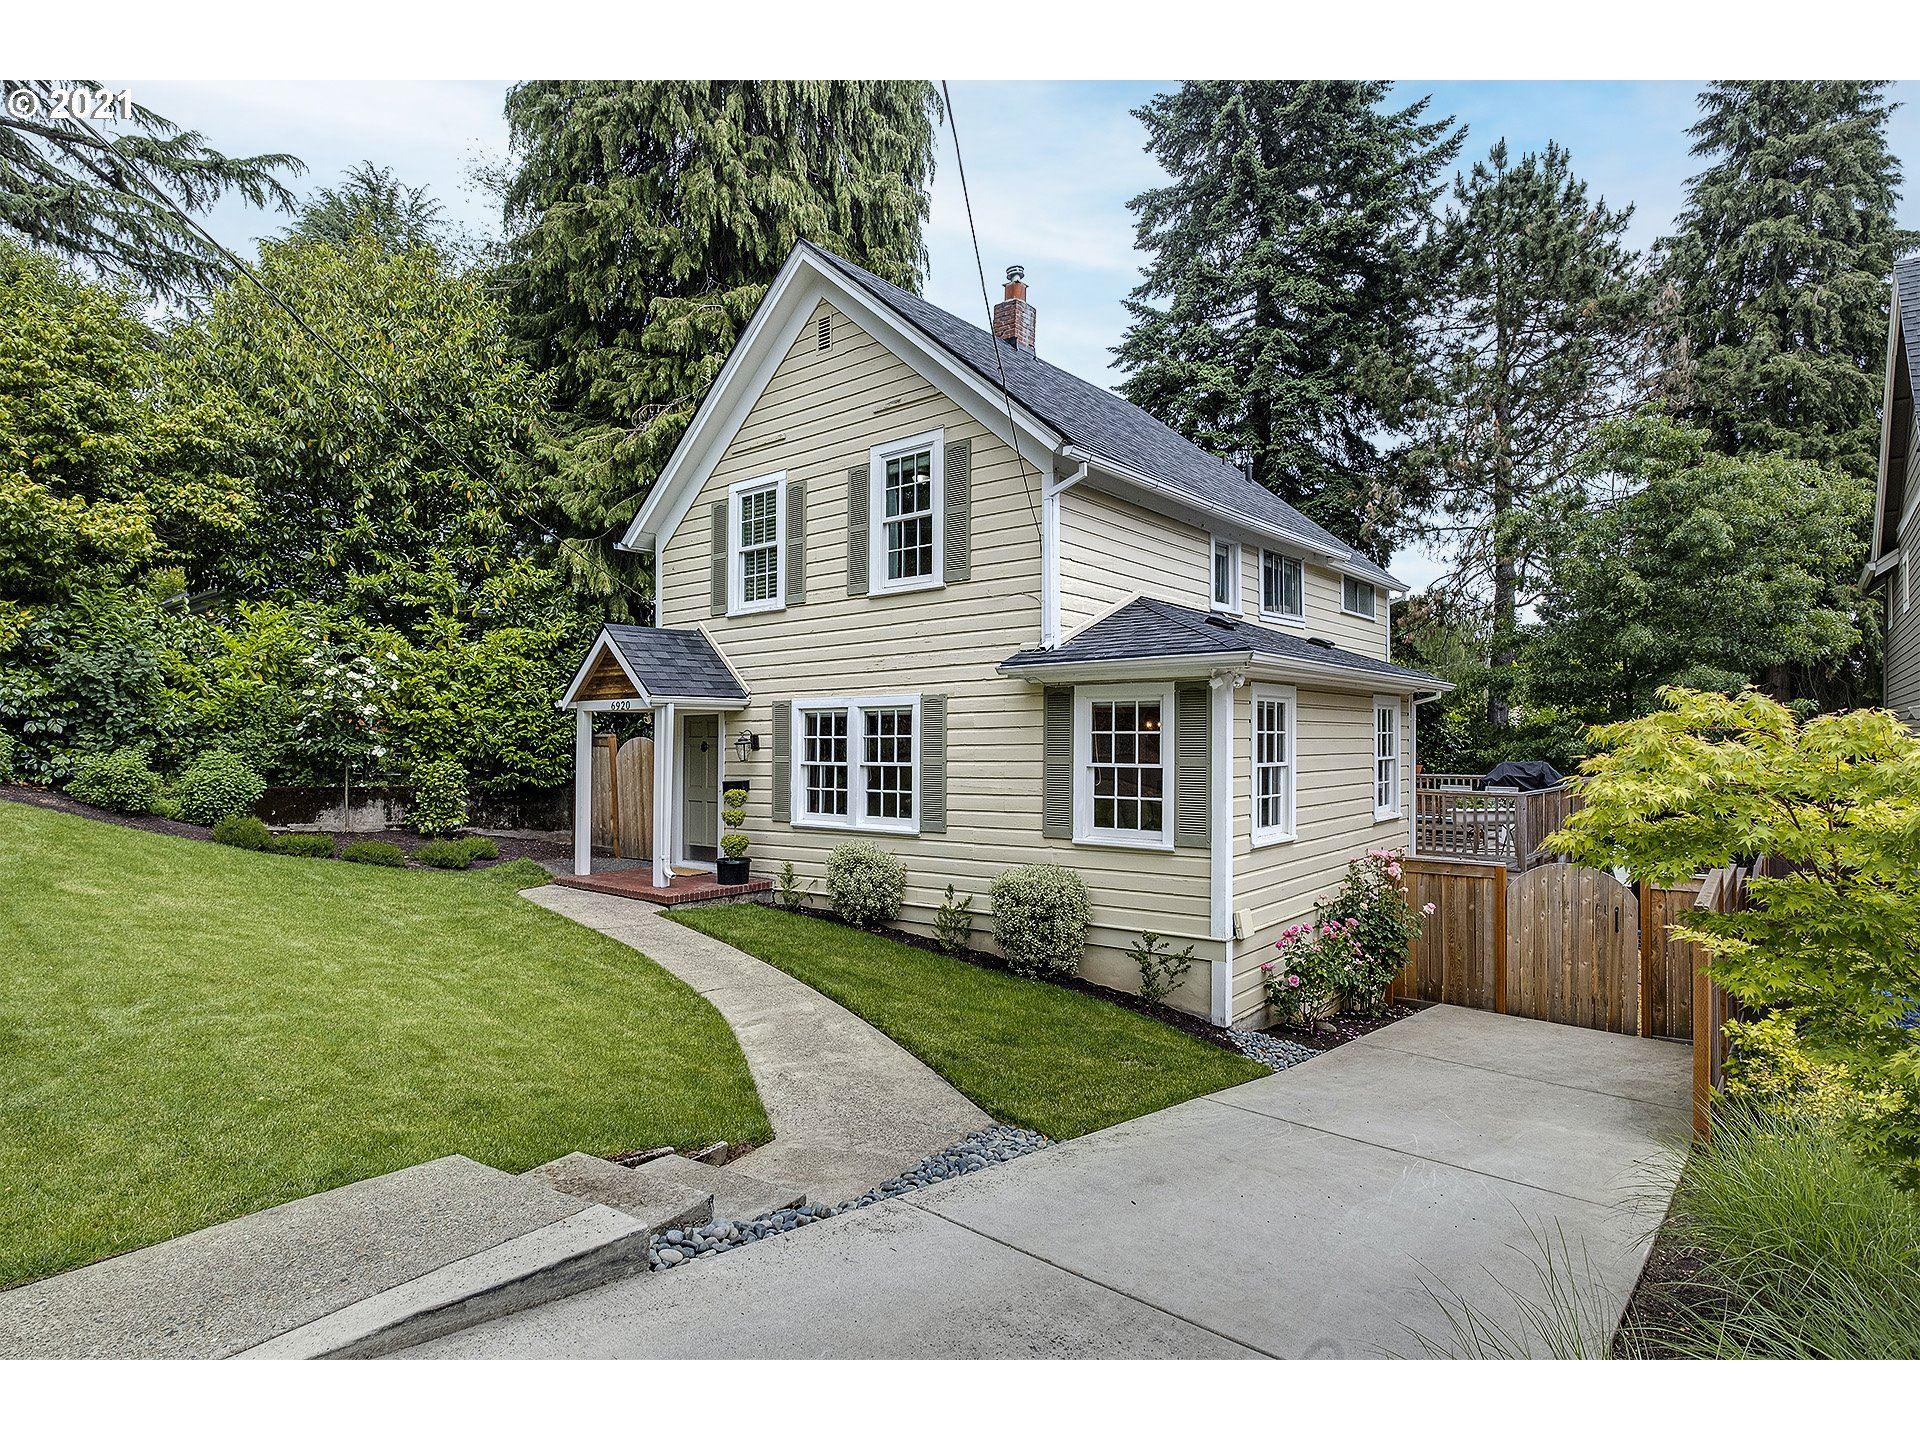 6920 SW 7TH AVE, Portland, OR 97219 - MLS#: 21448457